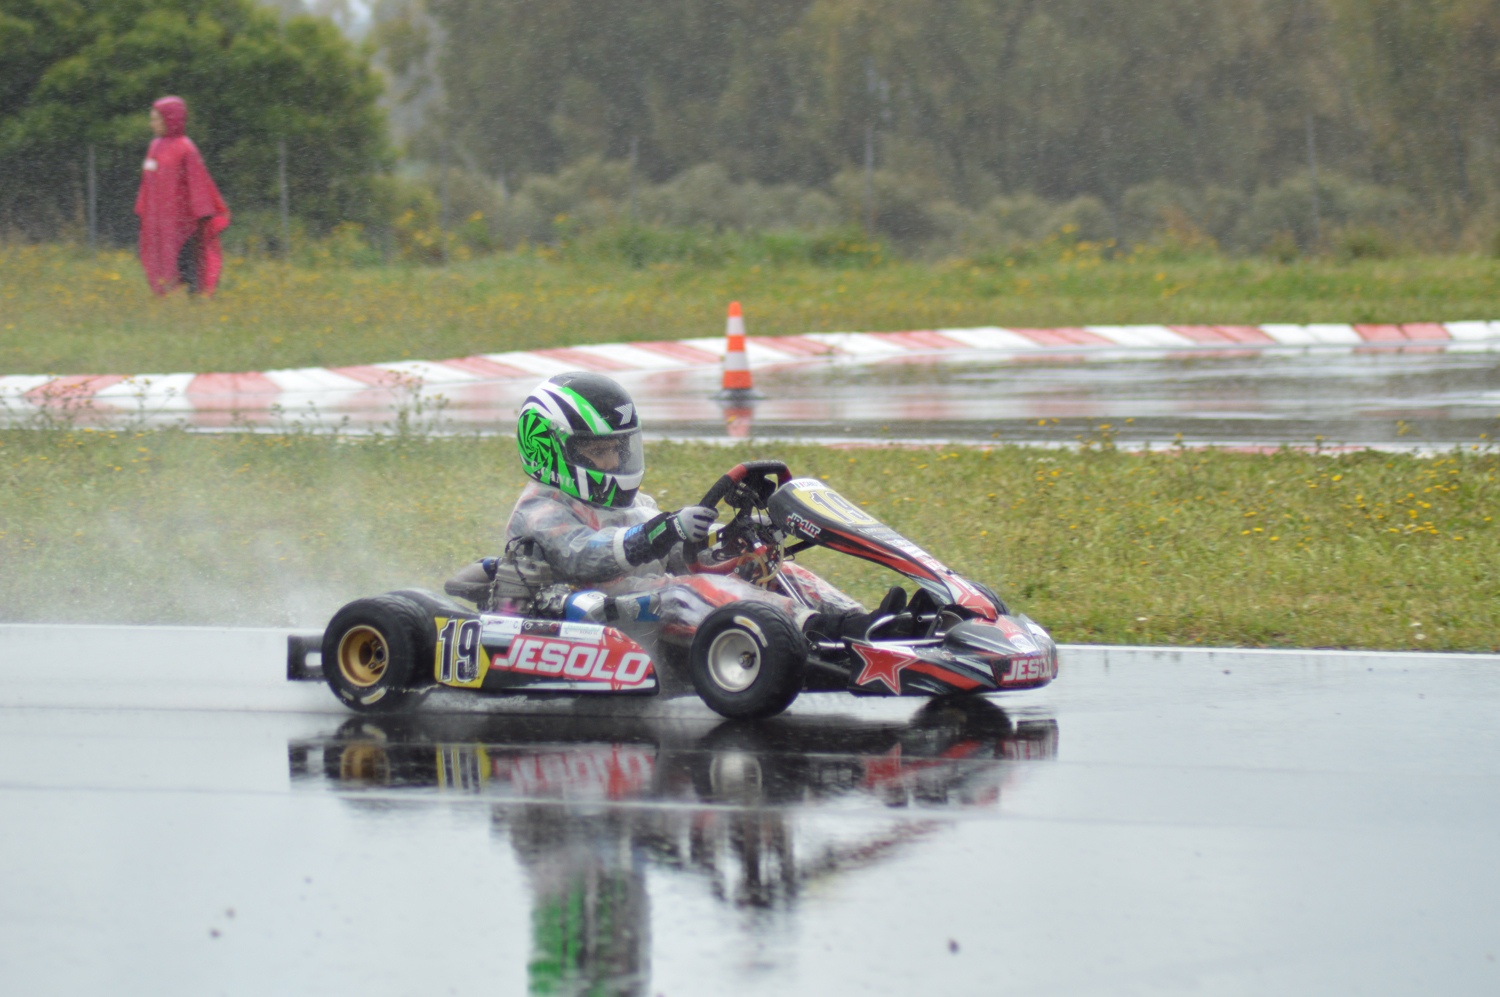 Foto Minikart freepress